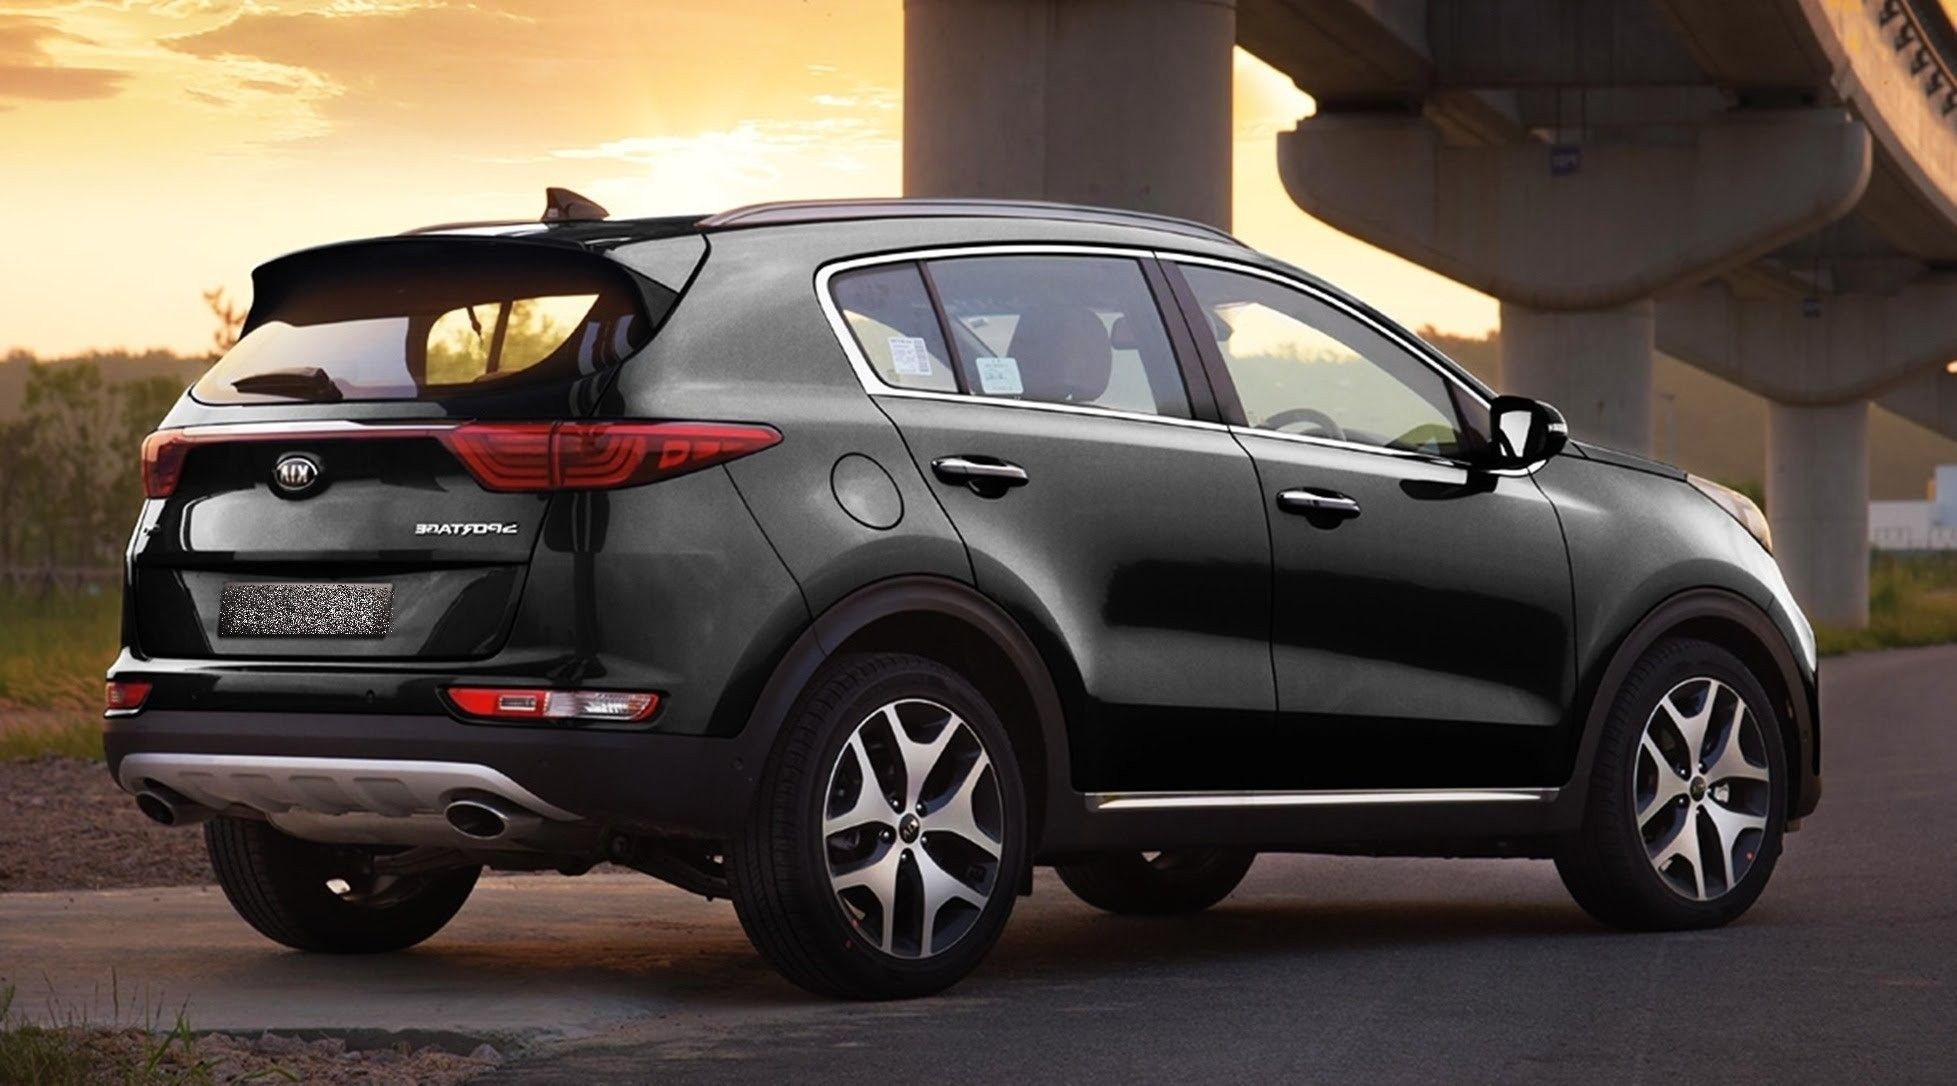 2019 Kia Sportage Sx Redesign Price And Review Sportage Kia Sportage Kia